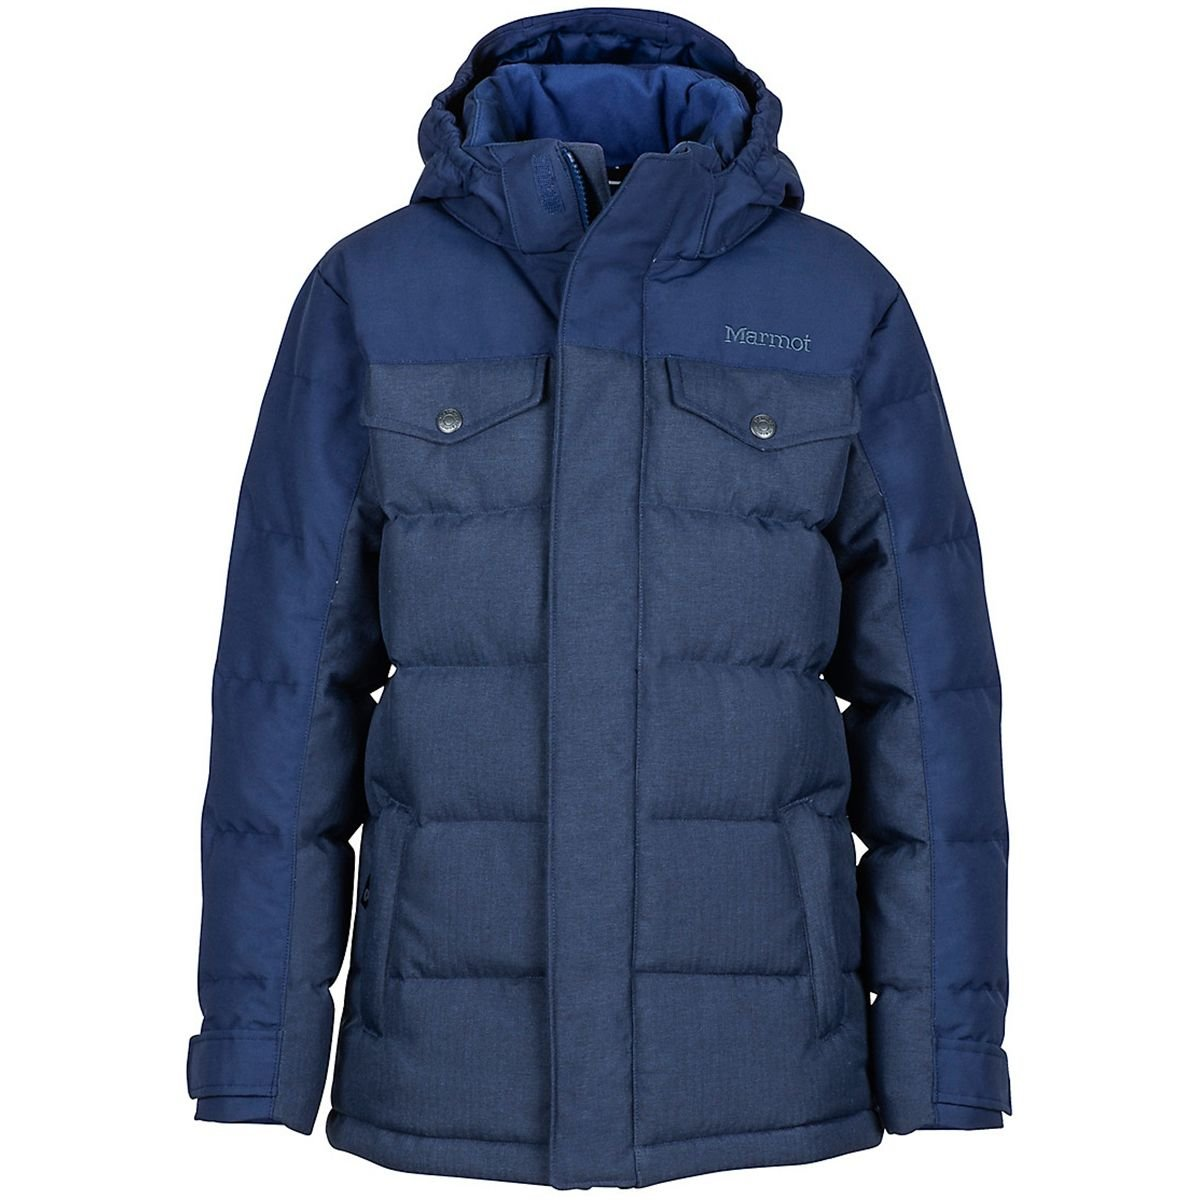 Marmot Fordham Down Jacket - Boys' Arctic Navy, S